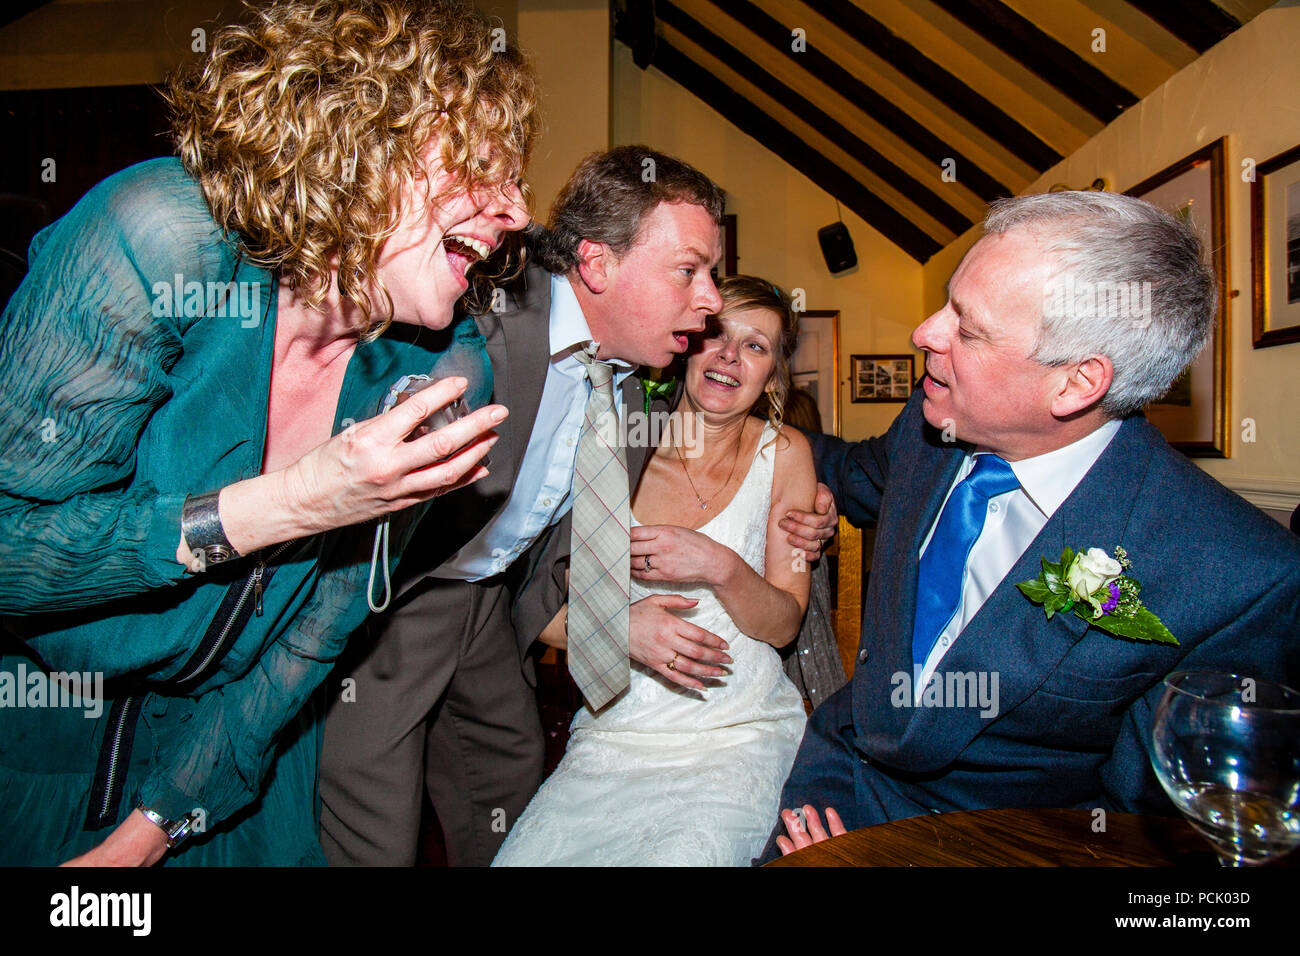 A Bride and Wedding Guests, Sussex, UK - Stock Image